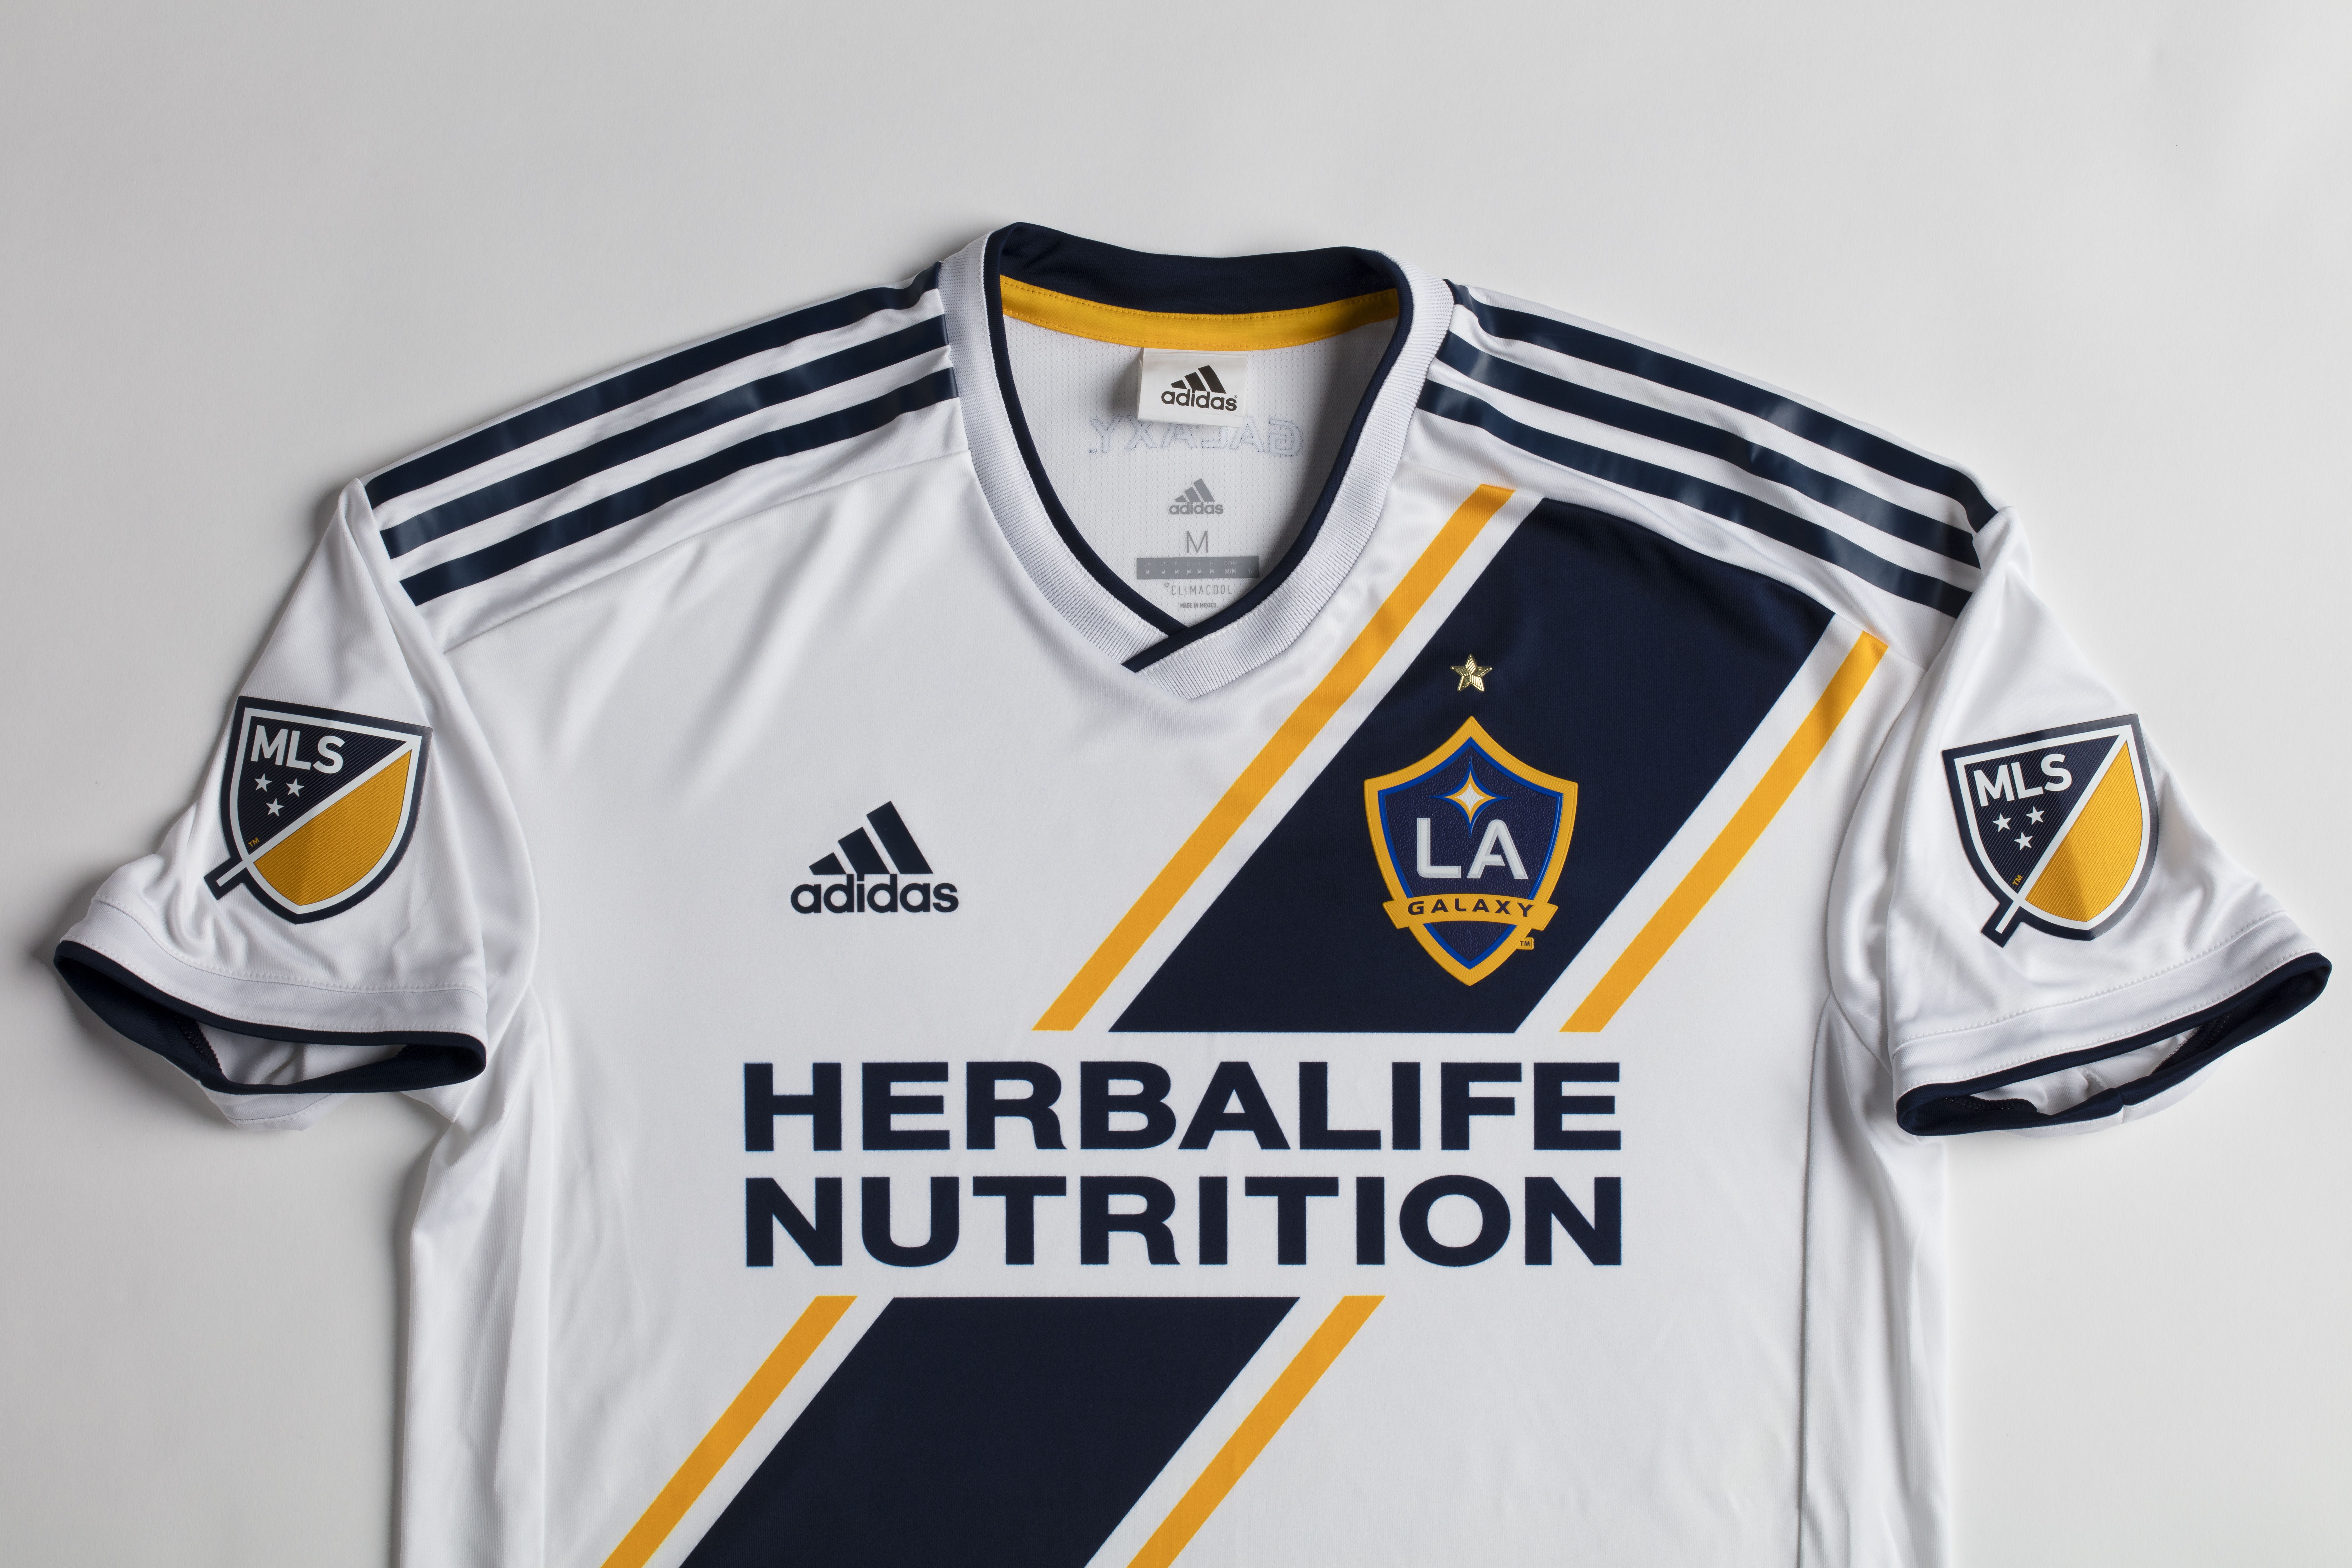 e66d7d6b2 2018 LA Galaxy primary jersey now available for purchase